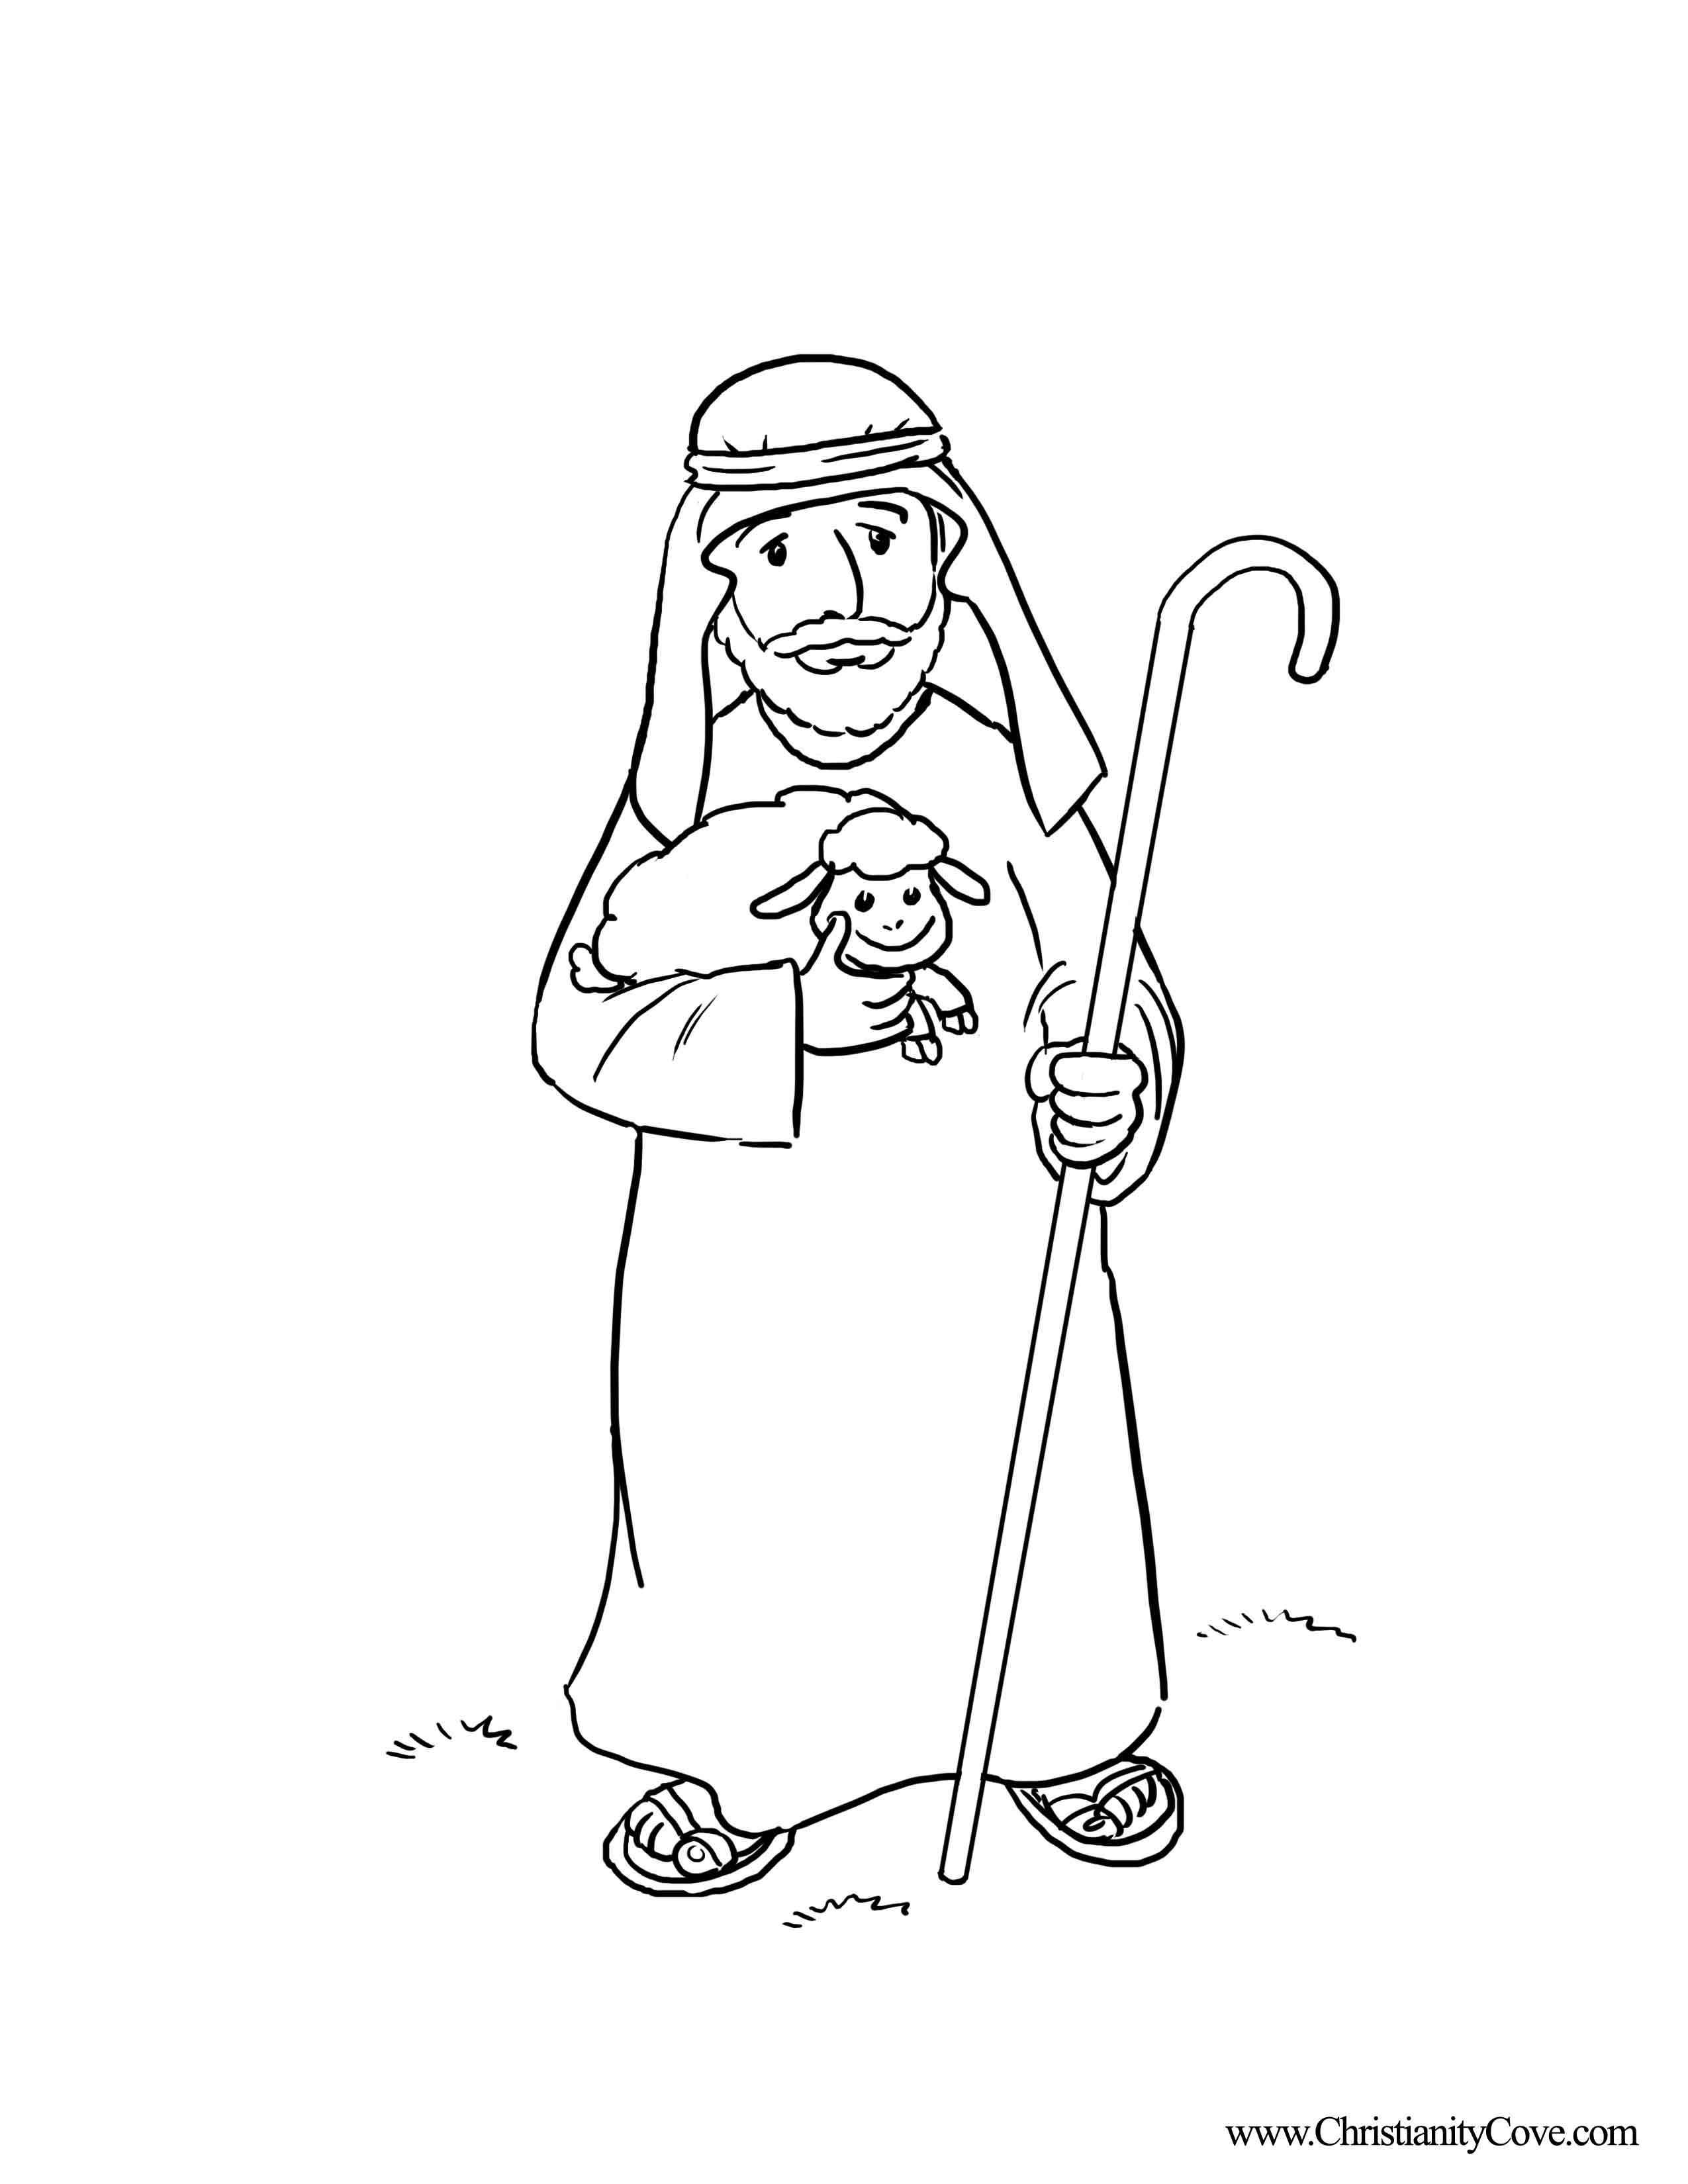 Coloring Pages Jesus The Good Shepherd Coloring Pages 1000 images about o bom pastor on pinterest maze coloring and form of